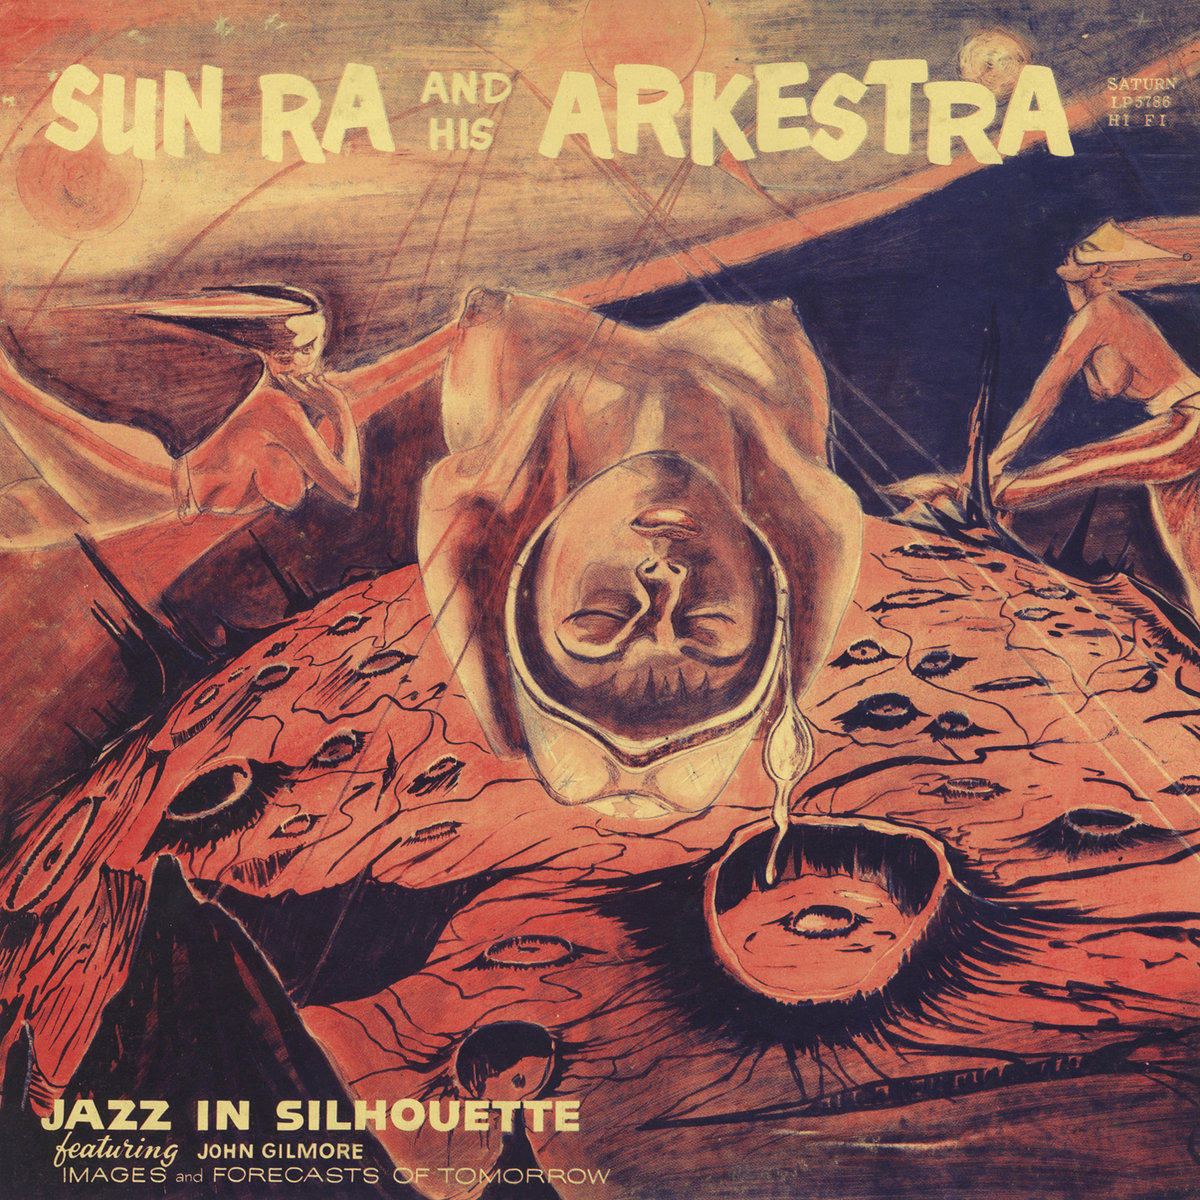 Image result for sun ra jazz in silhouette album cover high resolution